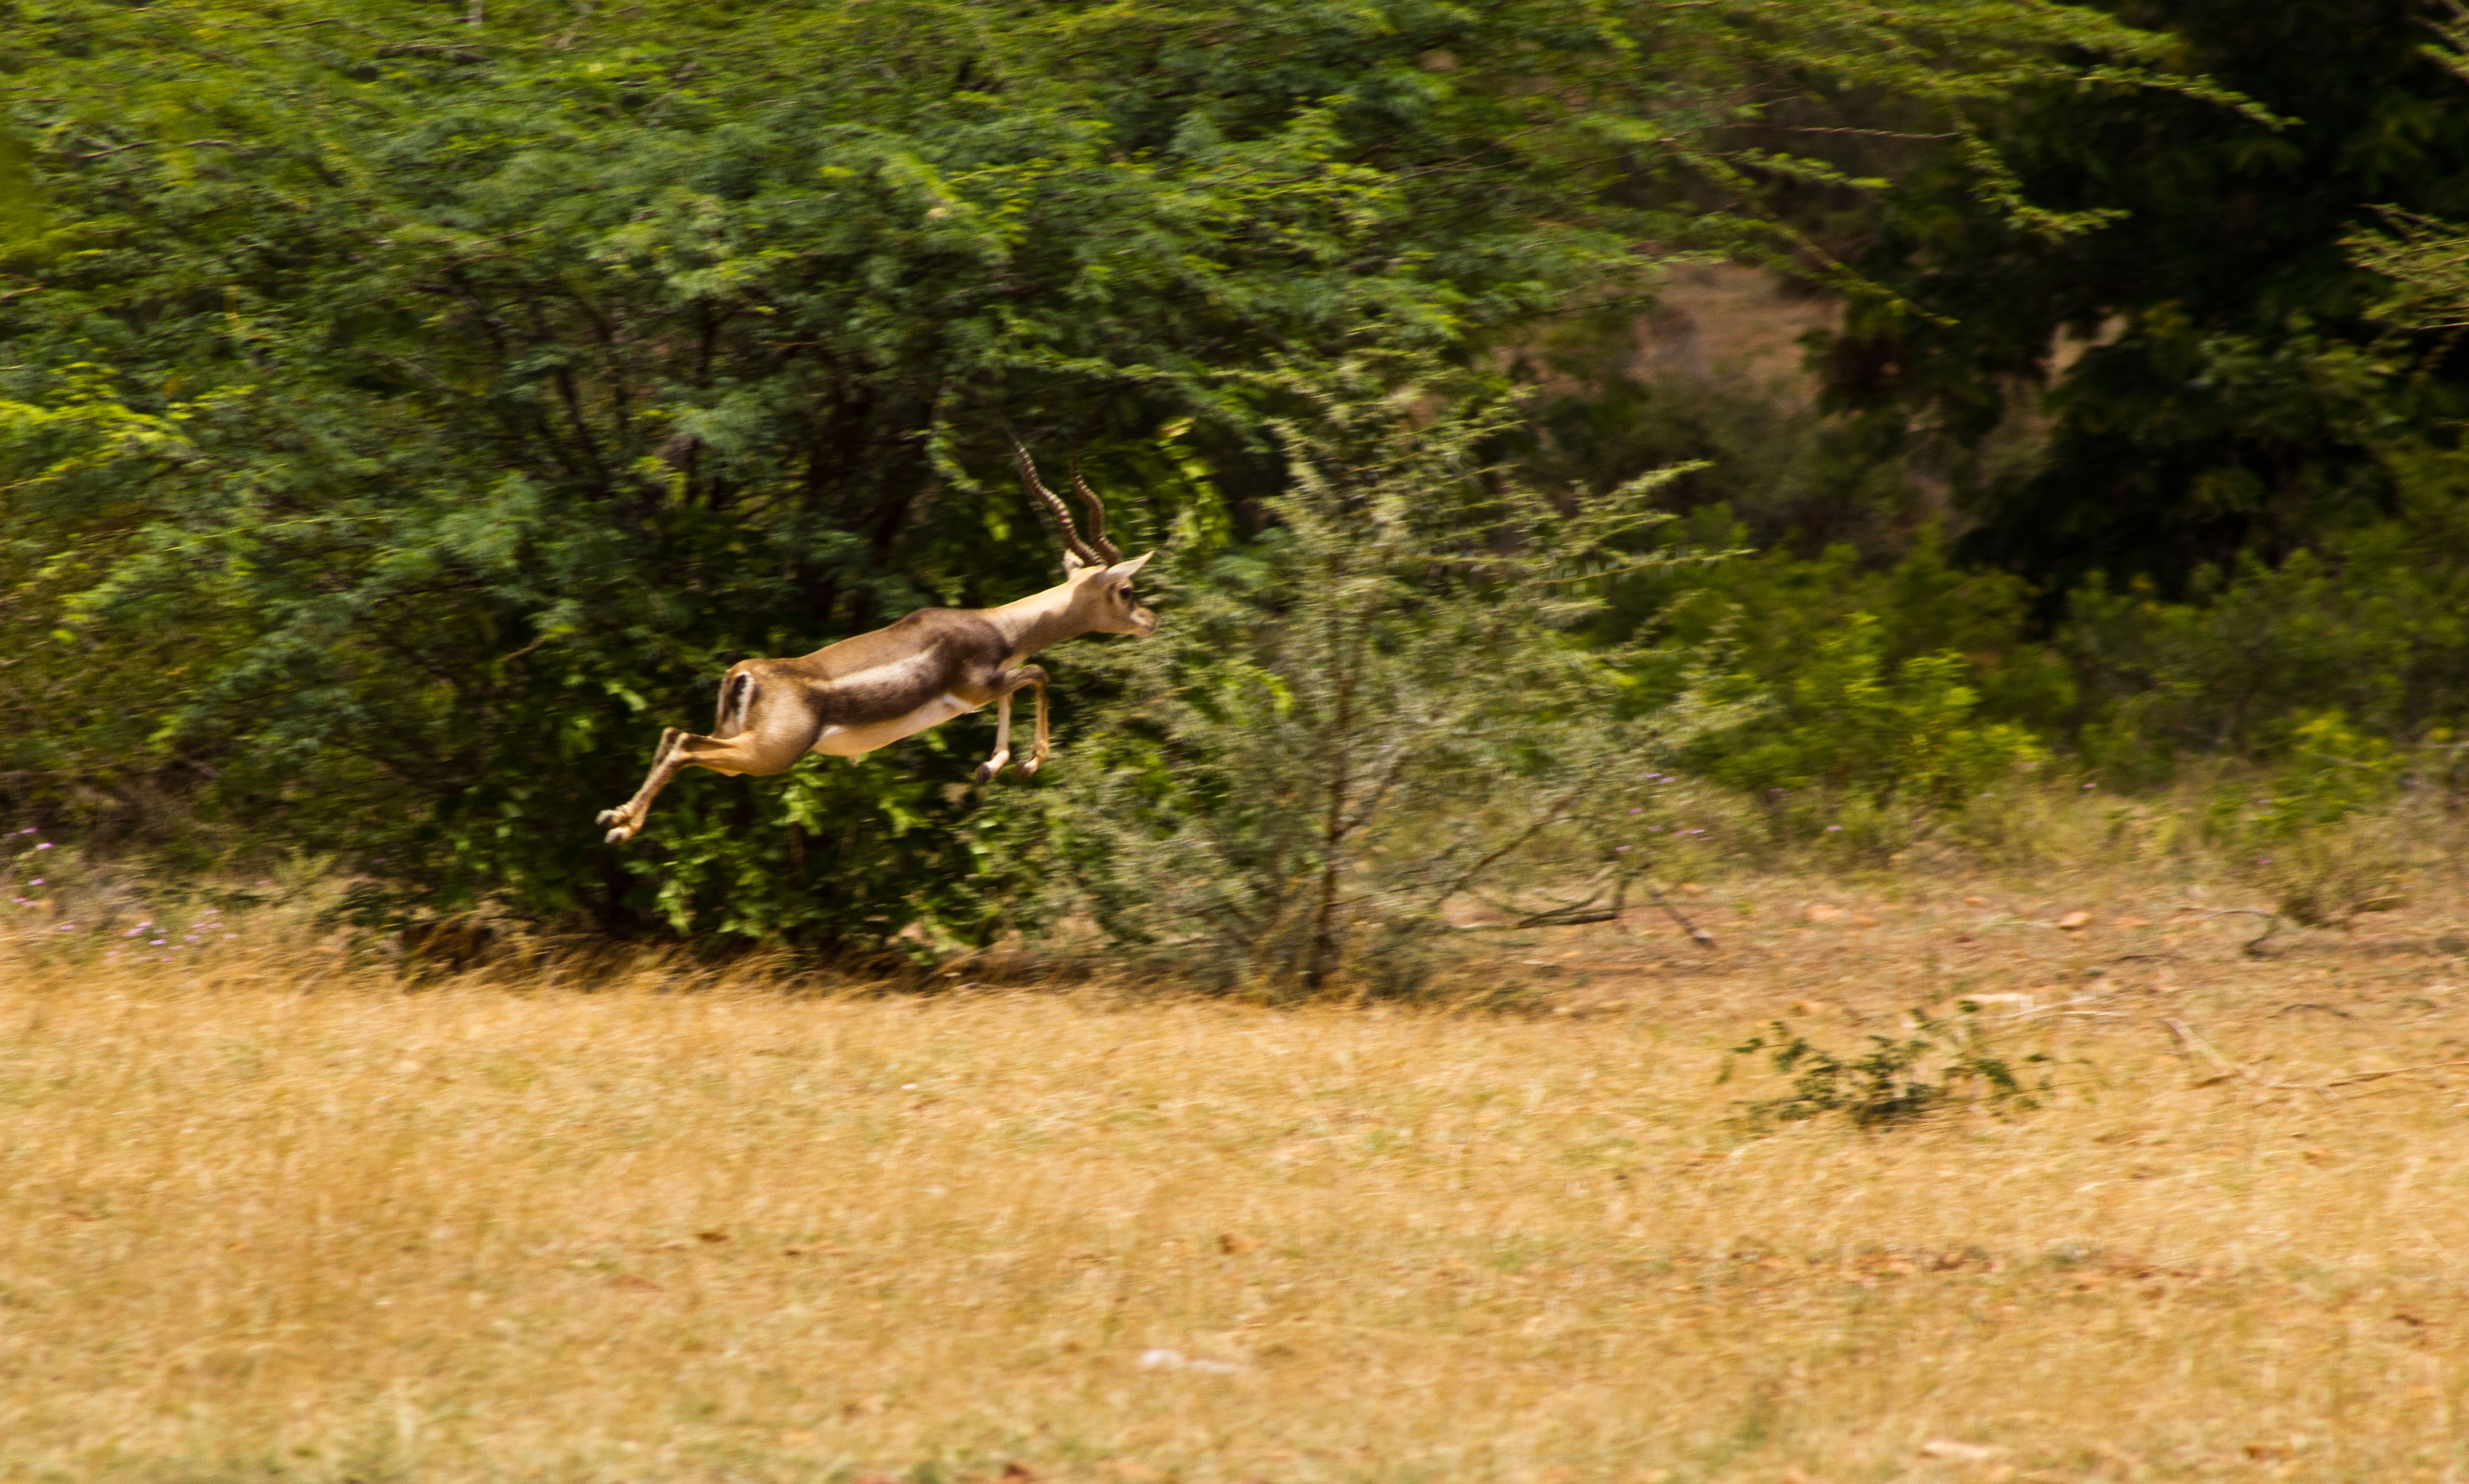 https://upload.wikimedia.org/wikipedia/commons/f/f1/Blackbuck_at_Jayamangala_Reserver.jpg